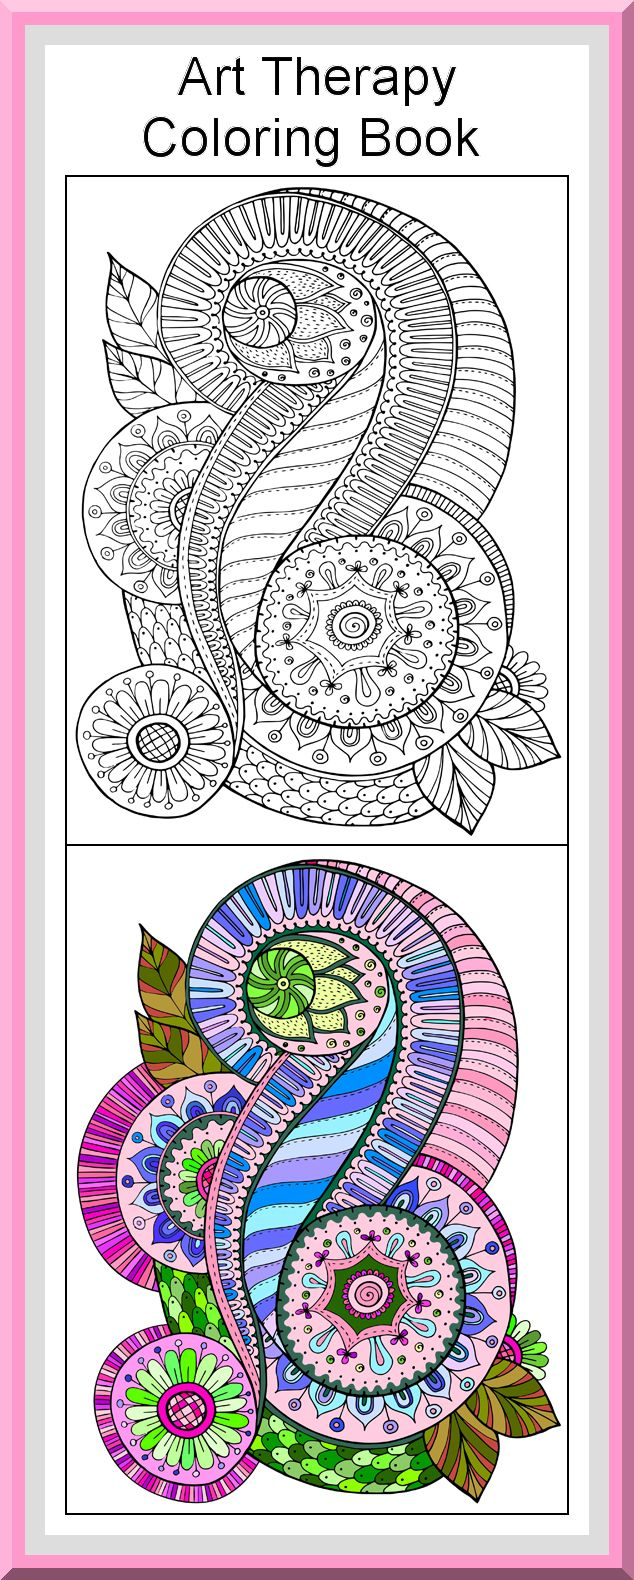 30 Printable Coloring Pages Outlines Color Examples Printable Download Pages Art Therapy Col Art Therapy Coloring Book Coloring Books Printable Art Therapy